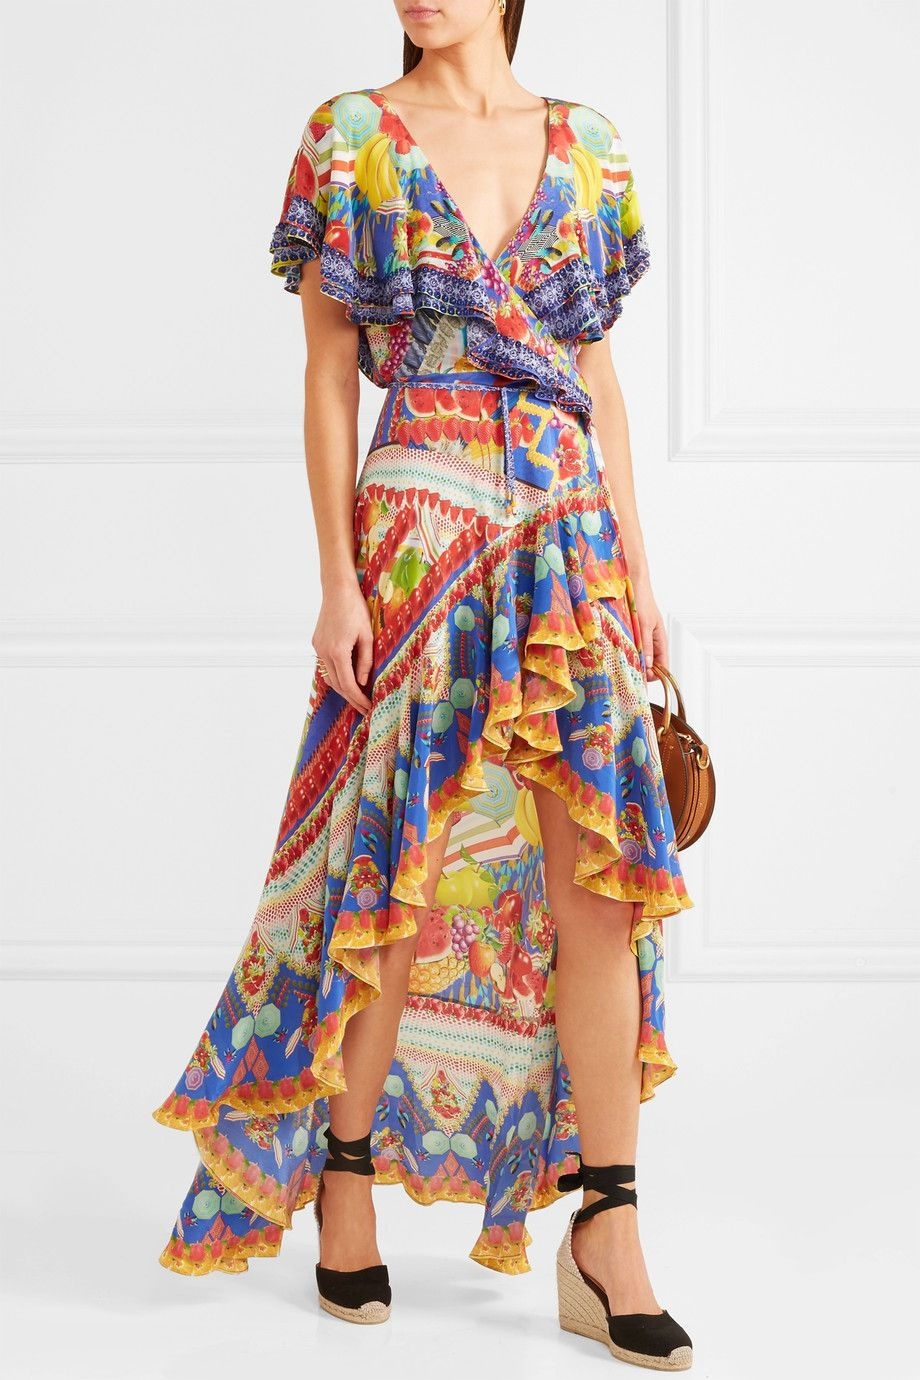 Rio Embellished Printed Silk Crepe De Chine Wrap Dress - Yellow Camilla R8w8jX6h7Y